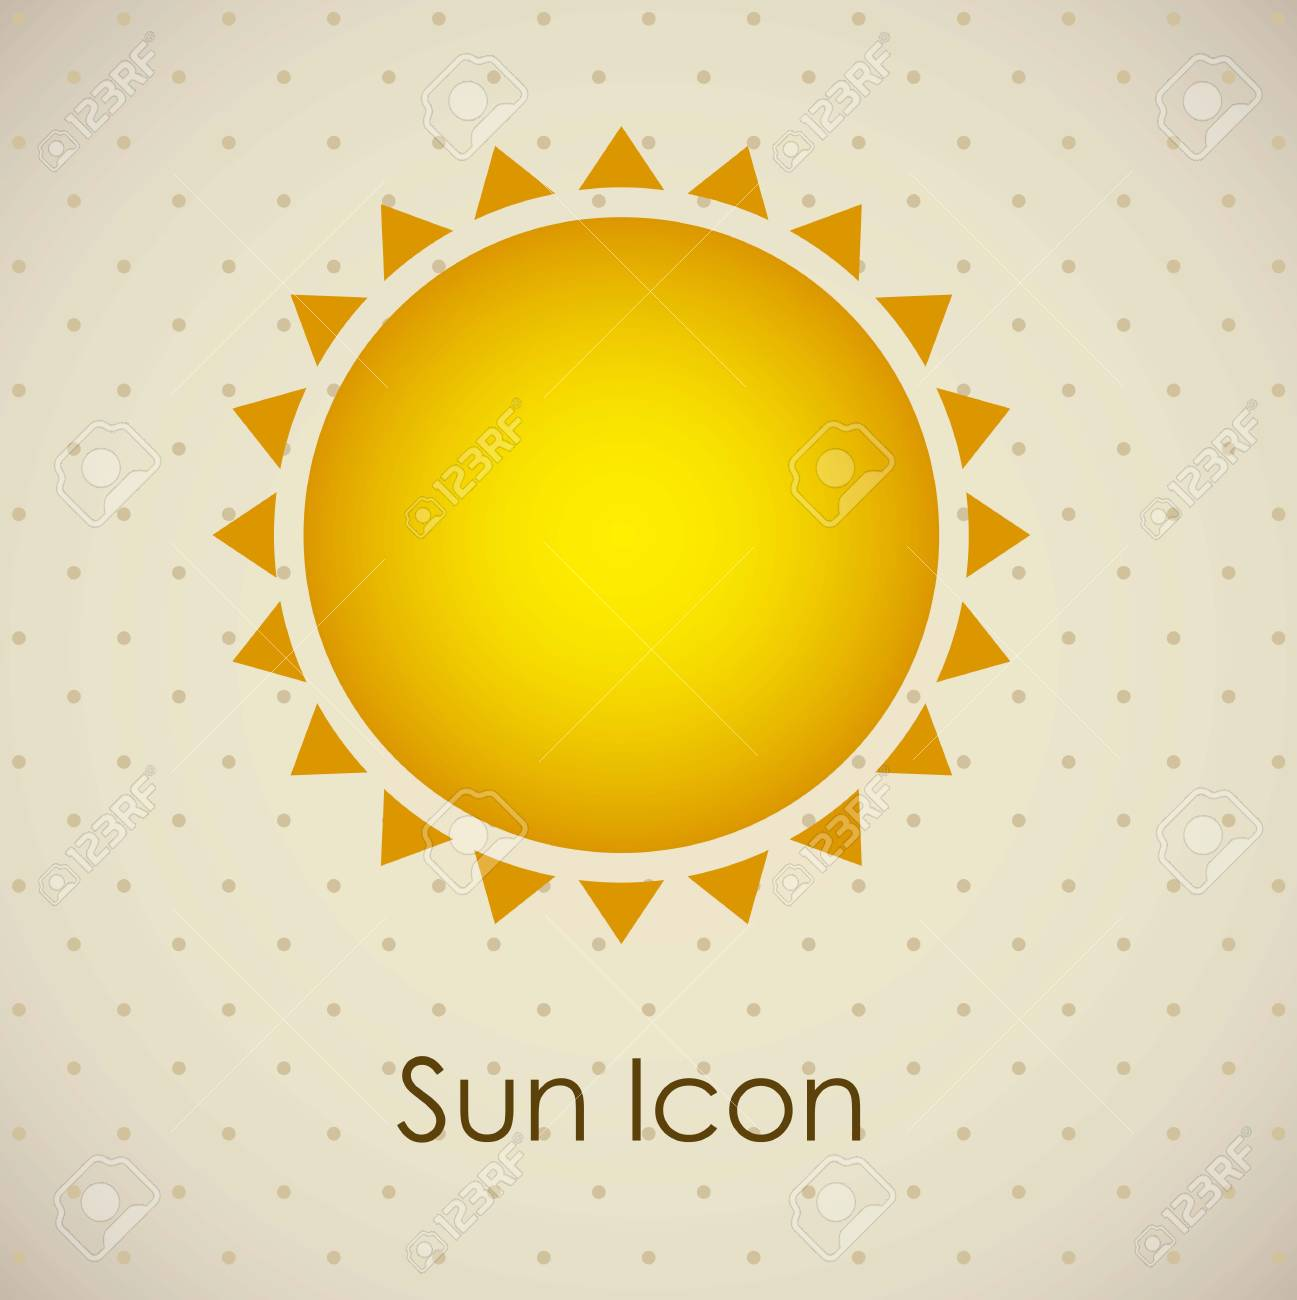 Illustration of icons sun icons of weather and seasons, vector illustration Stock Vector - 16818937